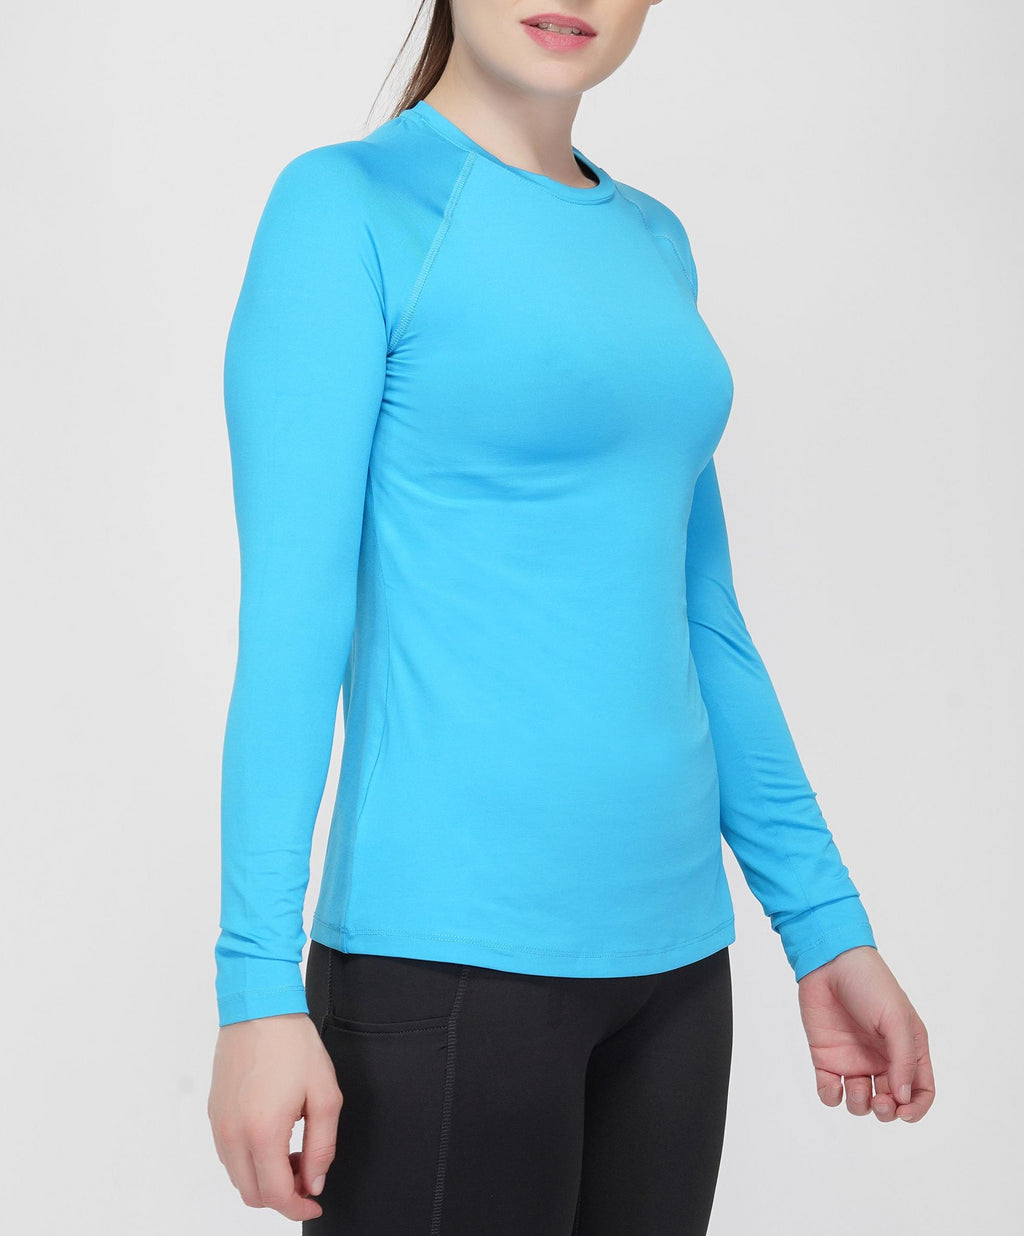 Trim Full Sleeves T-Shirt - Blue Turquoise